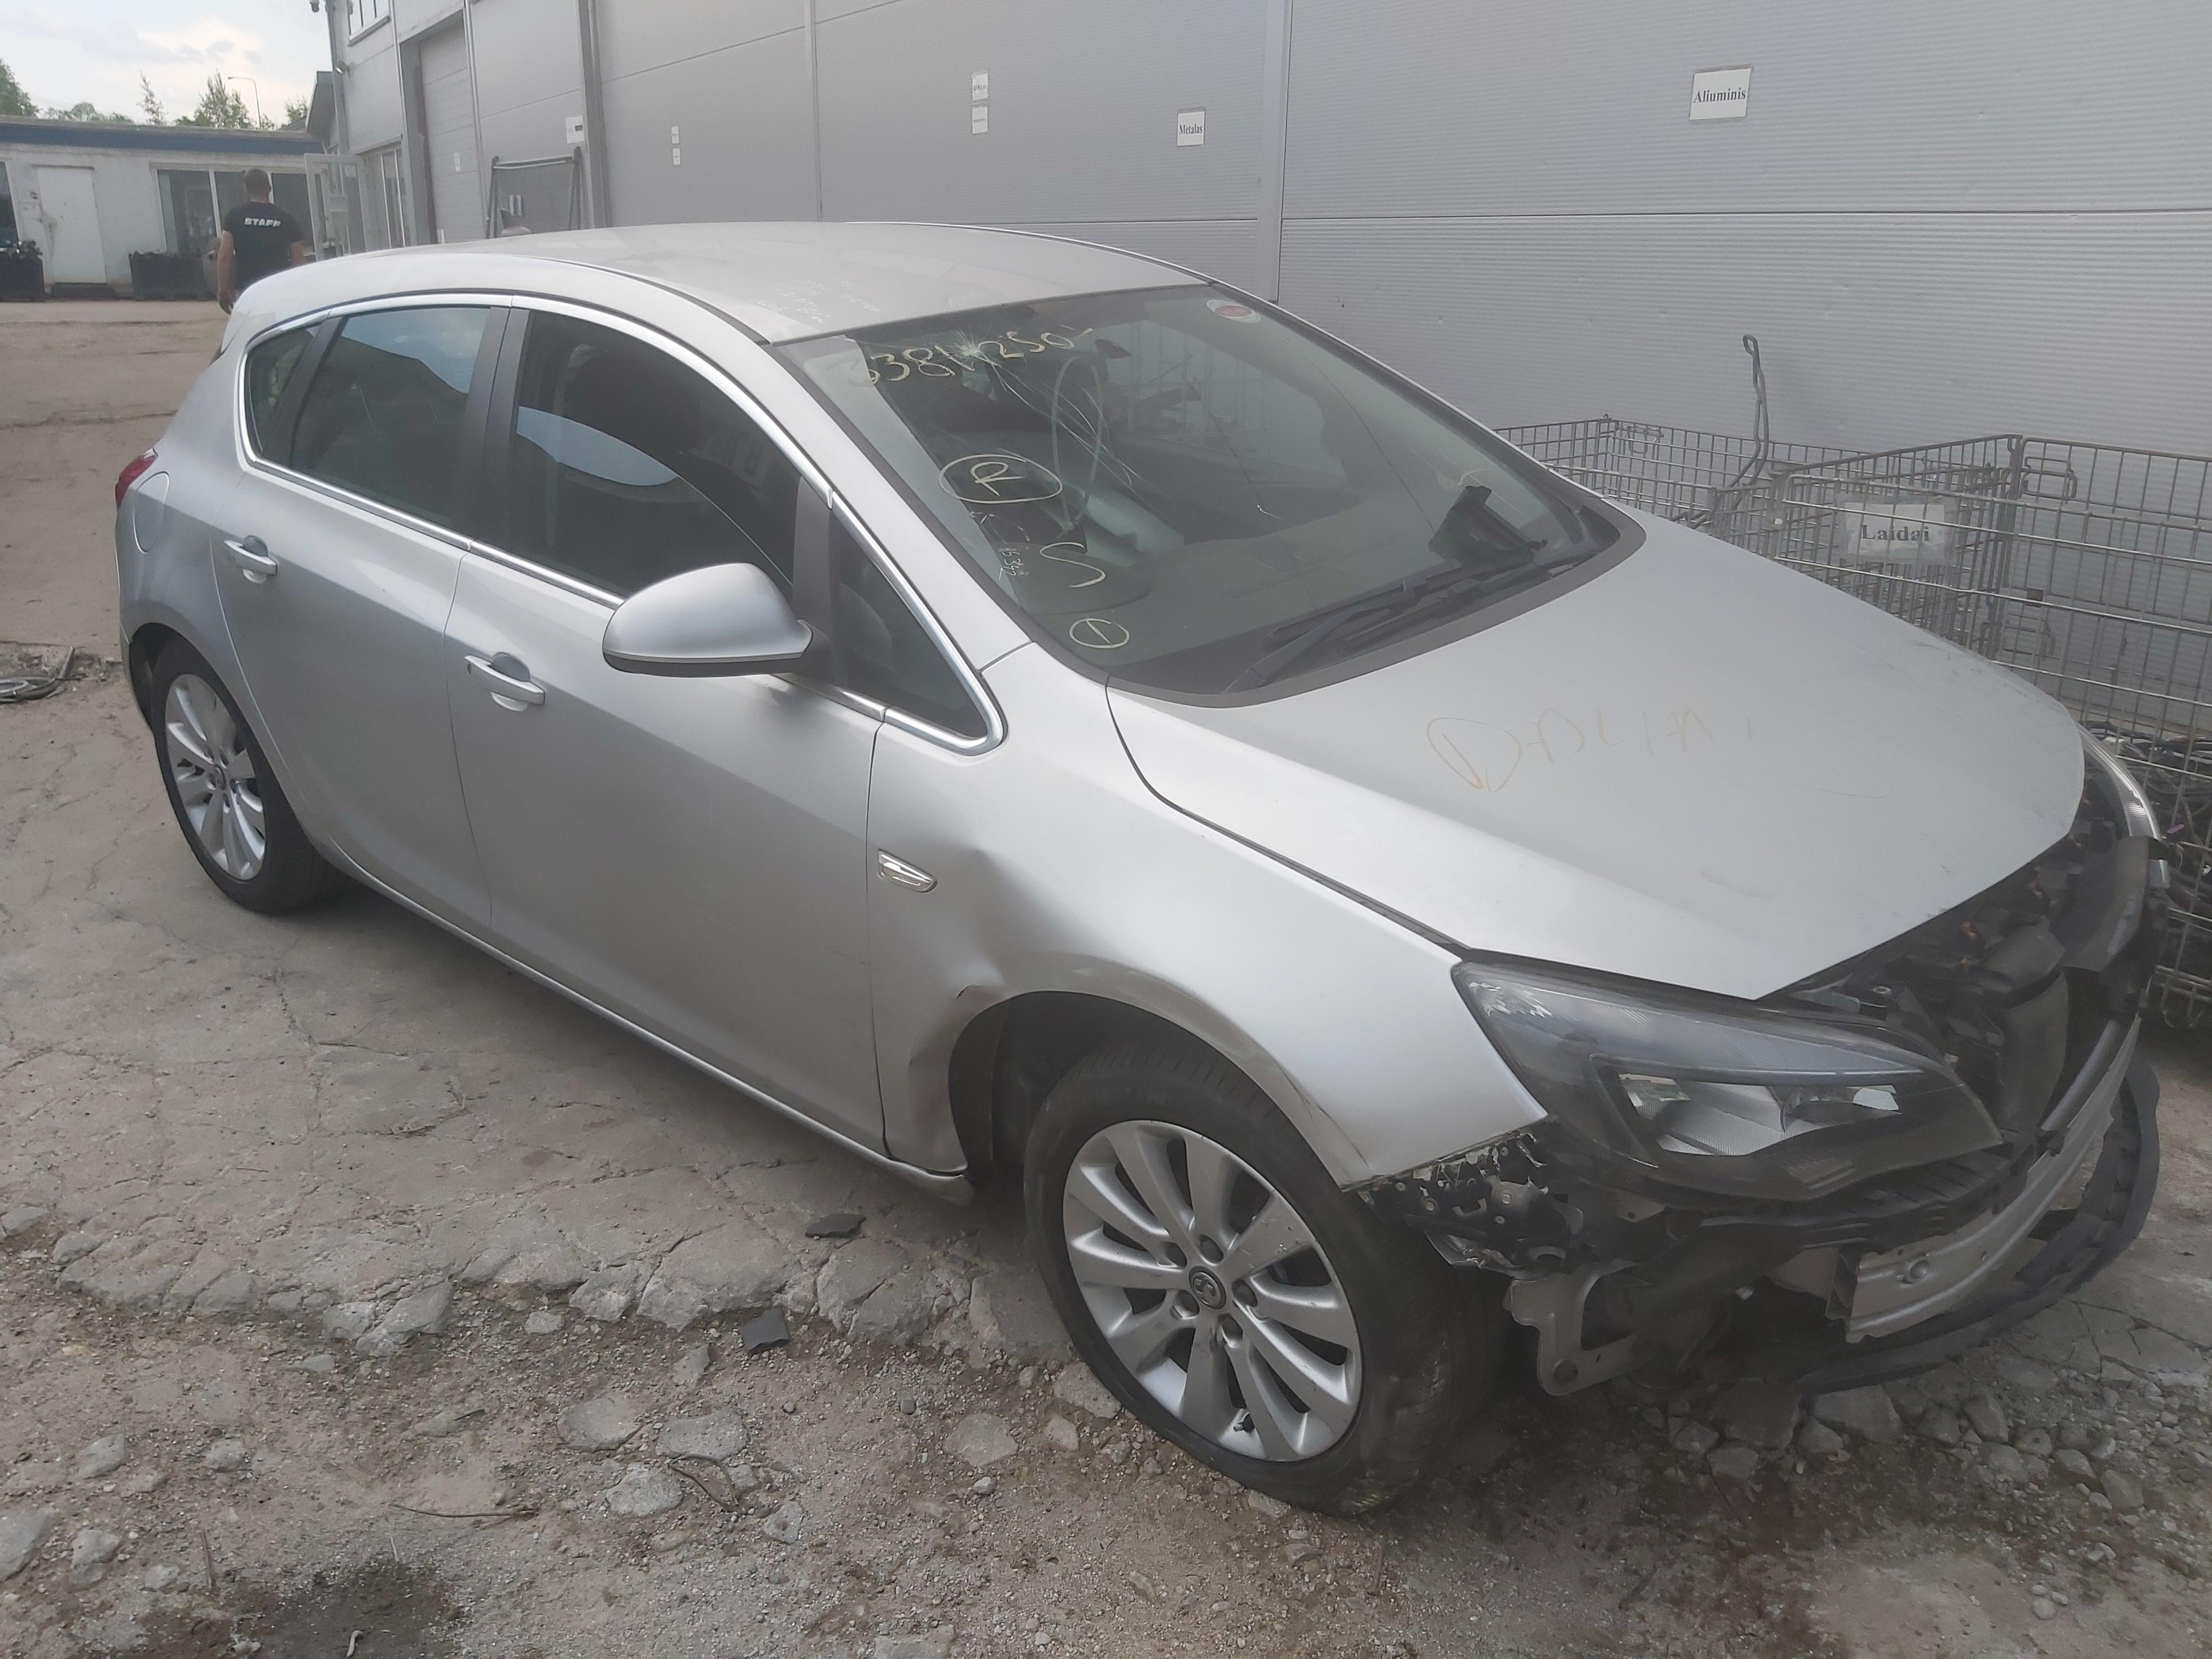 Foto-1 Opel Astra Astra, J 2009.12 - 2015.06 2013 Dyzelis 1.7